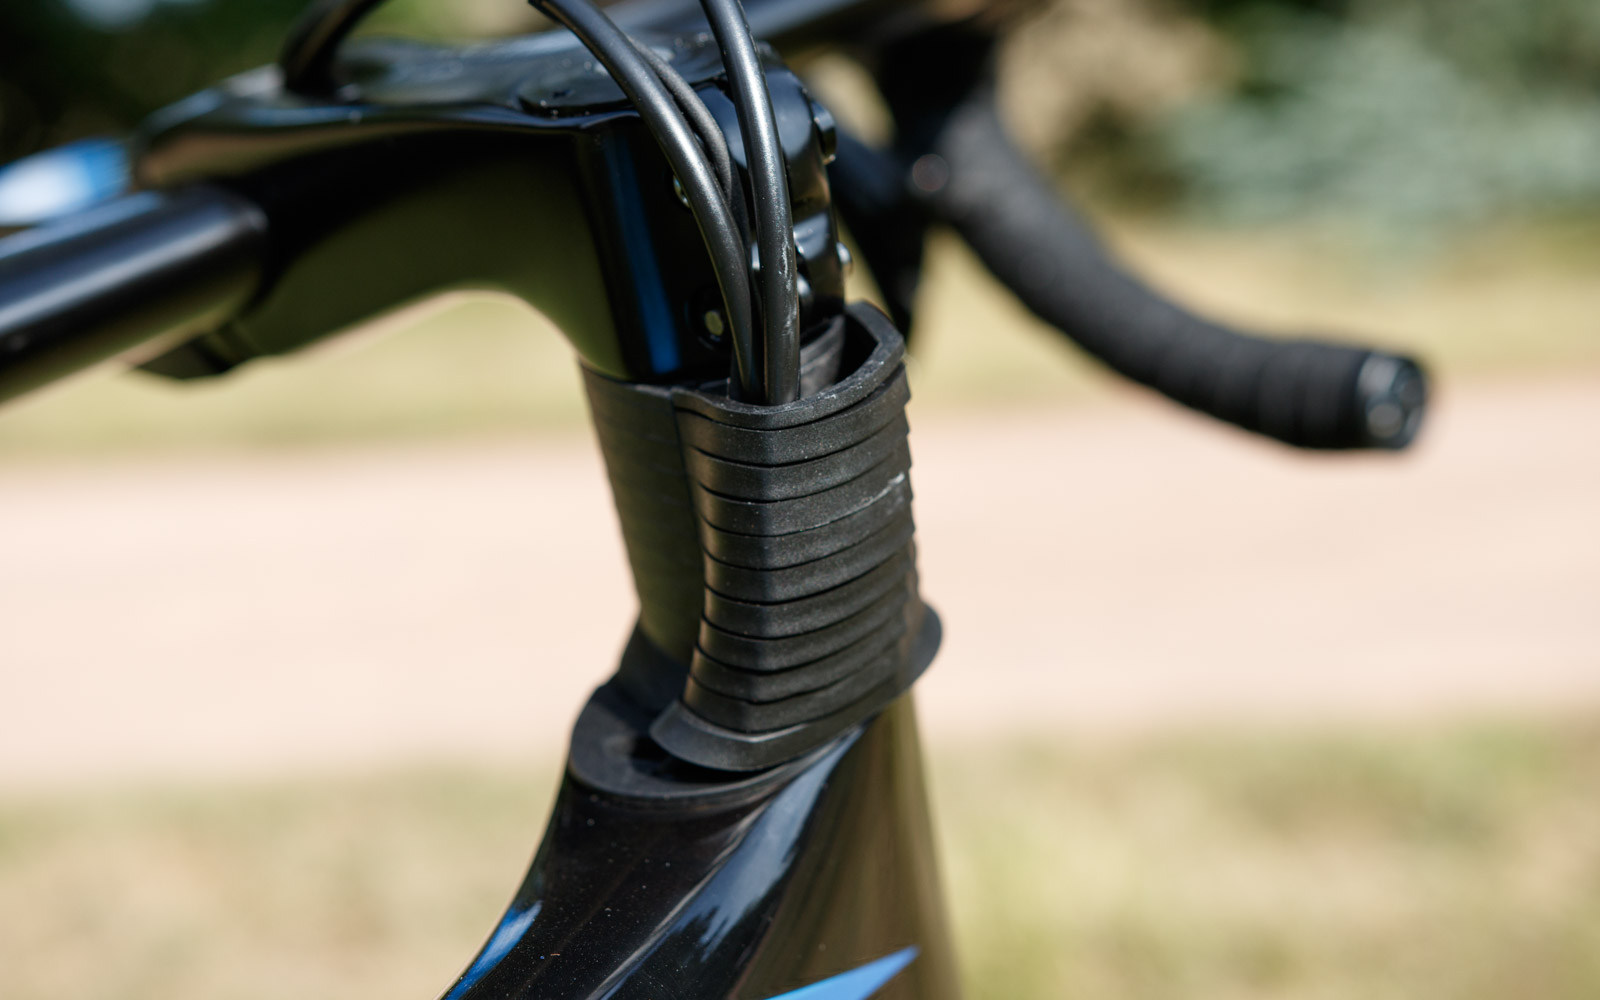 rubber stem spacers